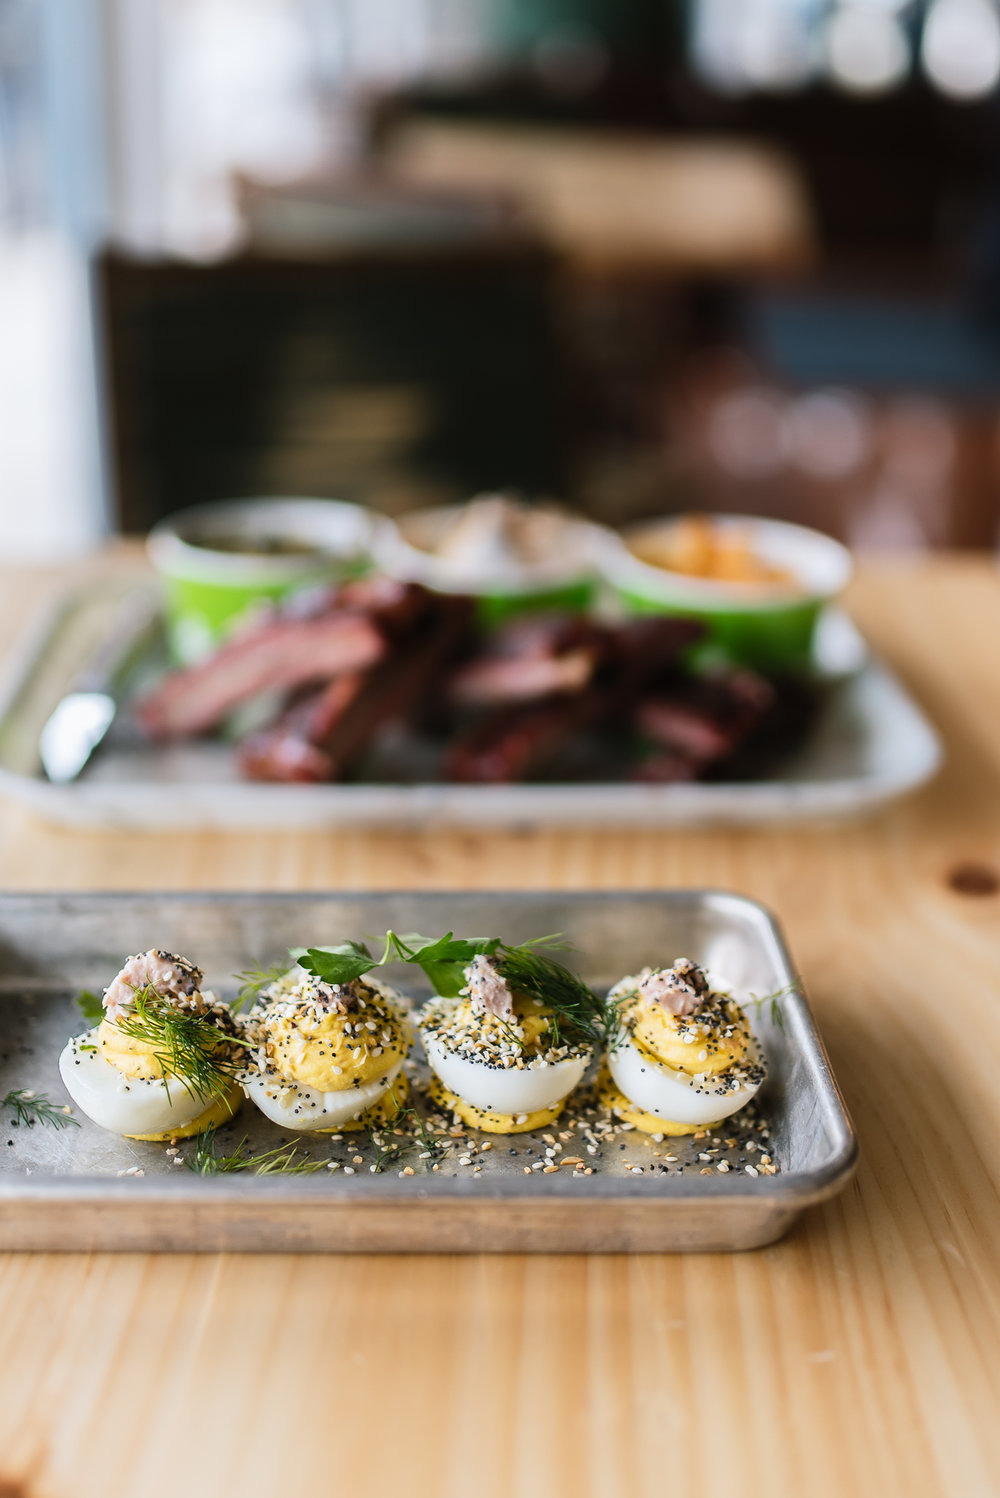 Deviled eggs - country ham, everything spice, herbs